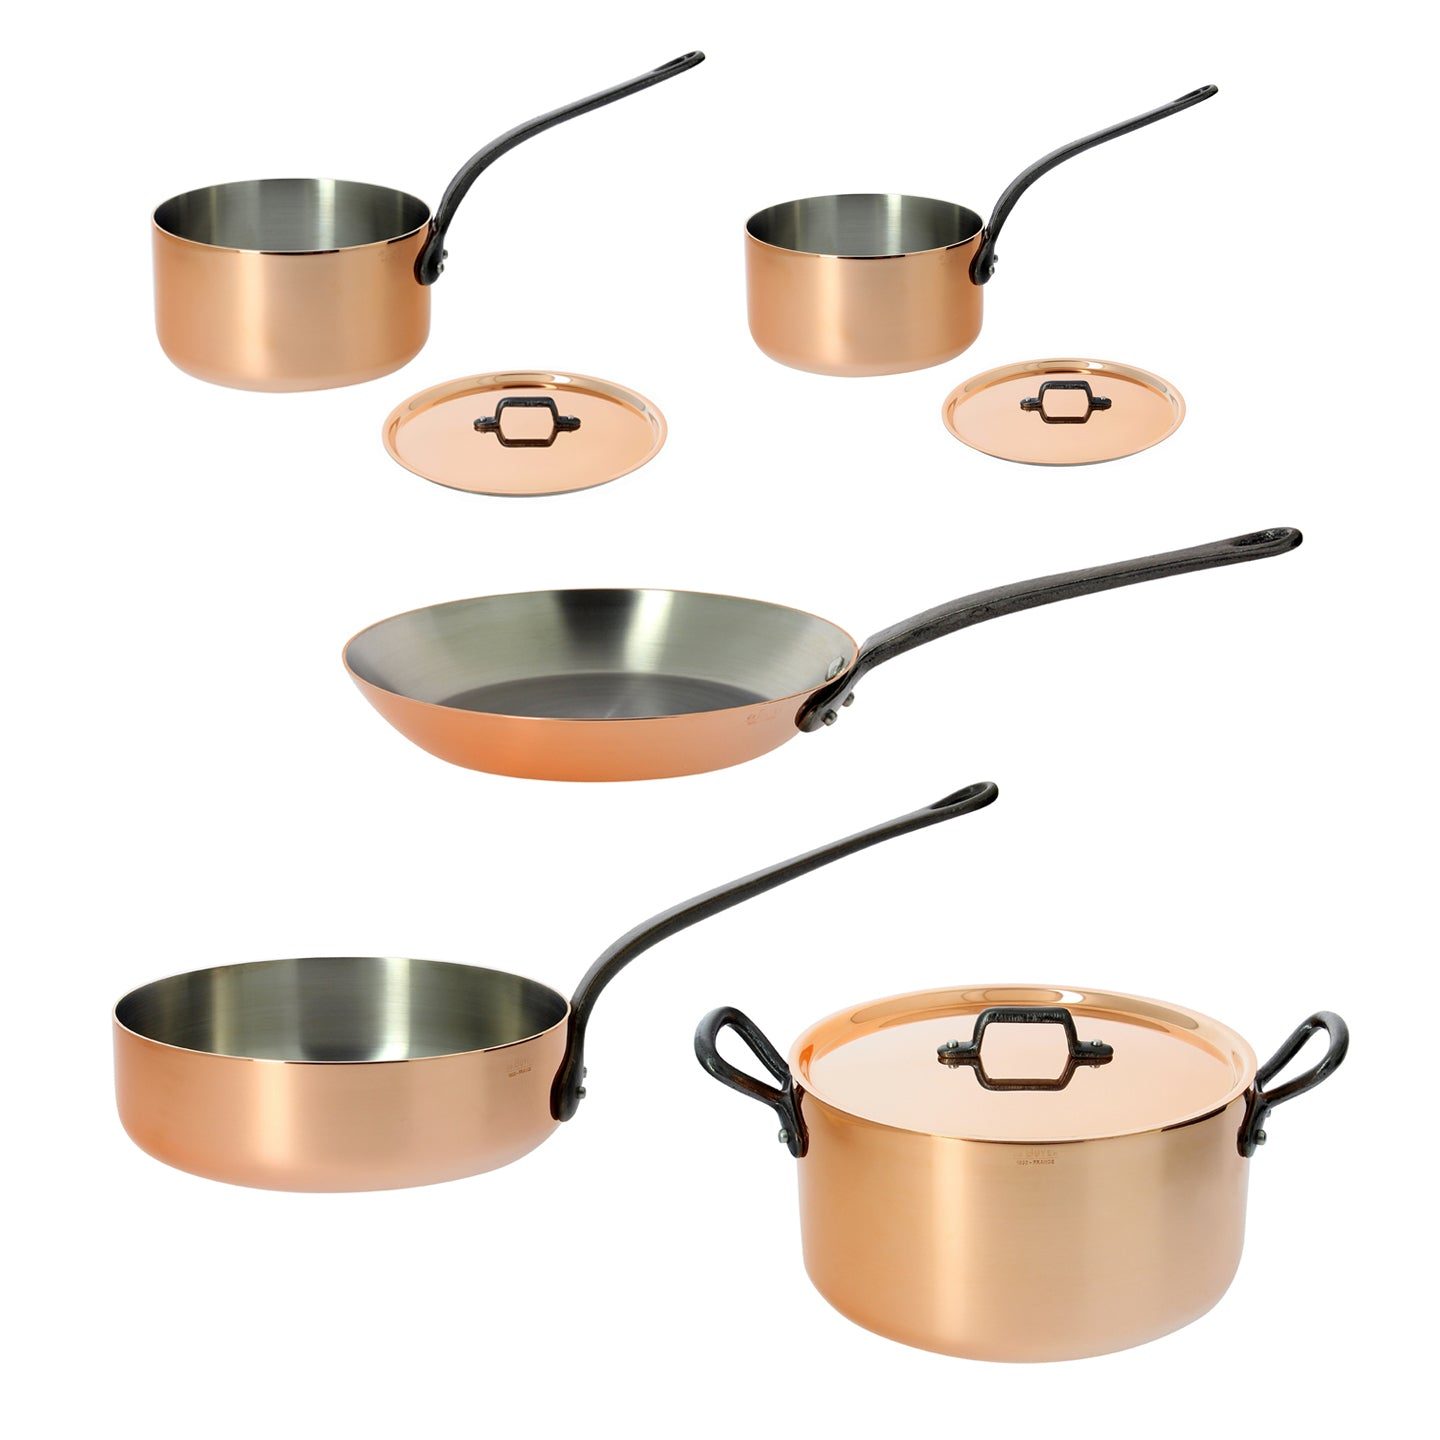 De Buyer Prima Matera Induction 5 Piece Cookware Set